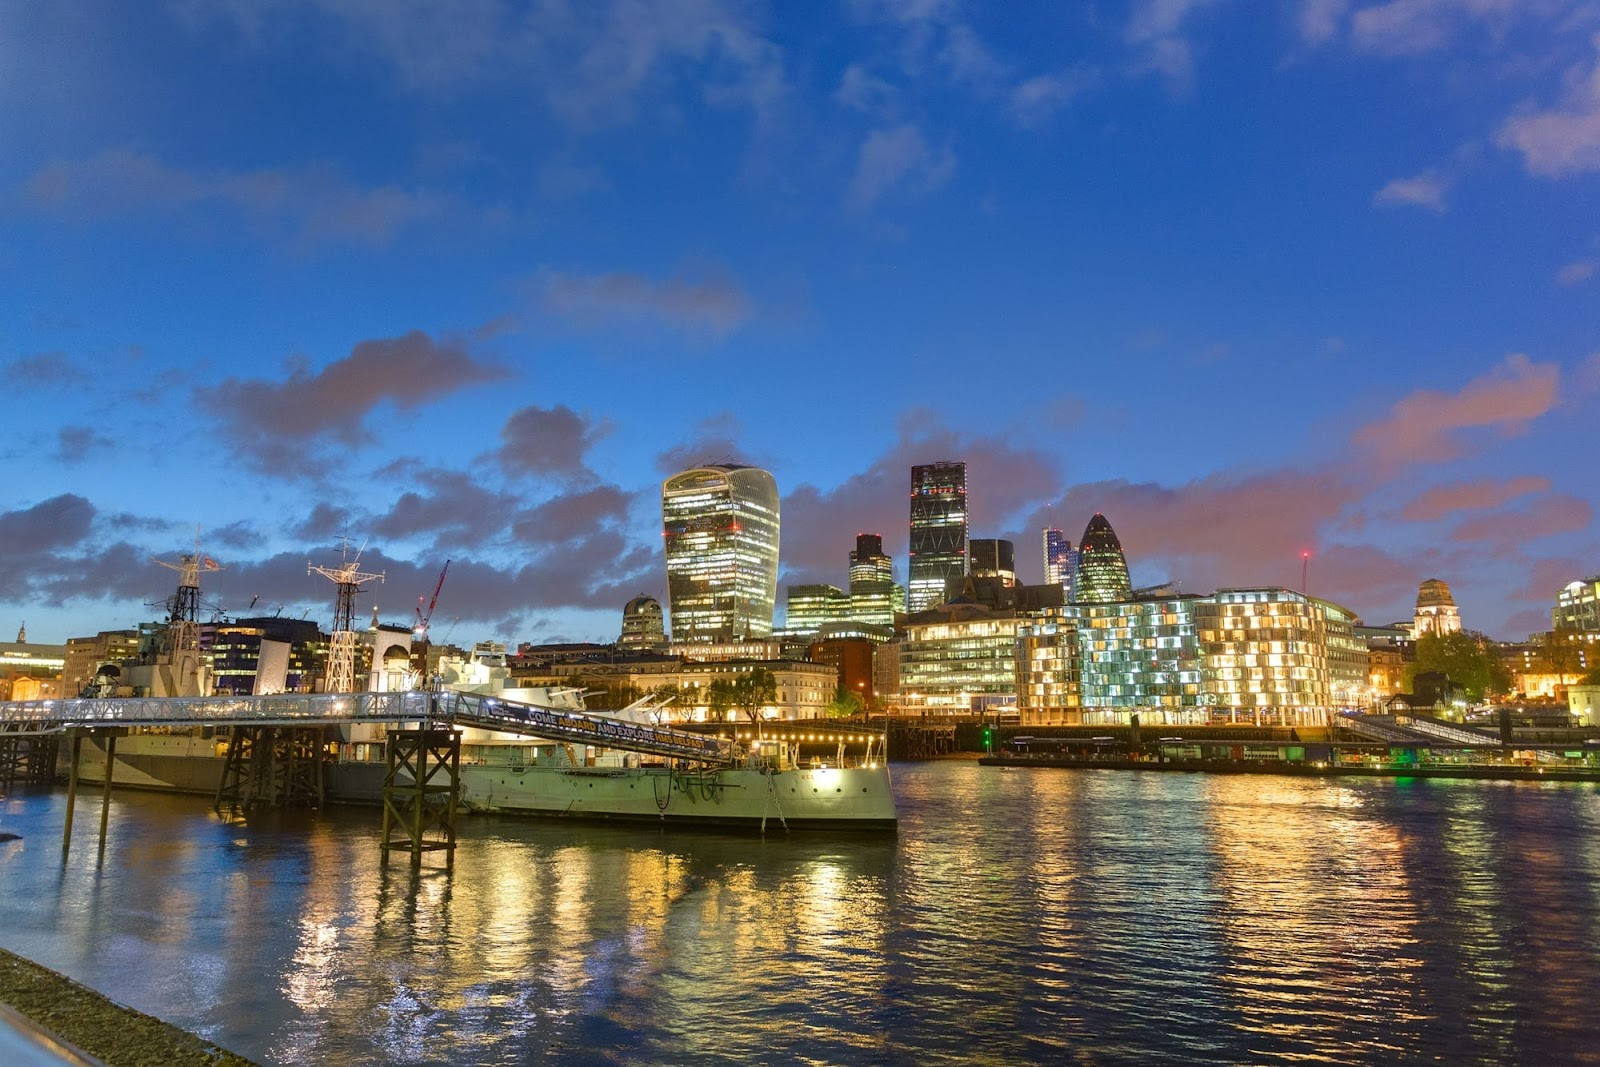 HMS Belfast and the city of London at night 2